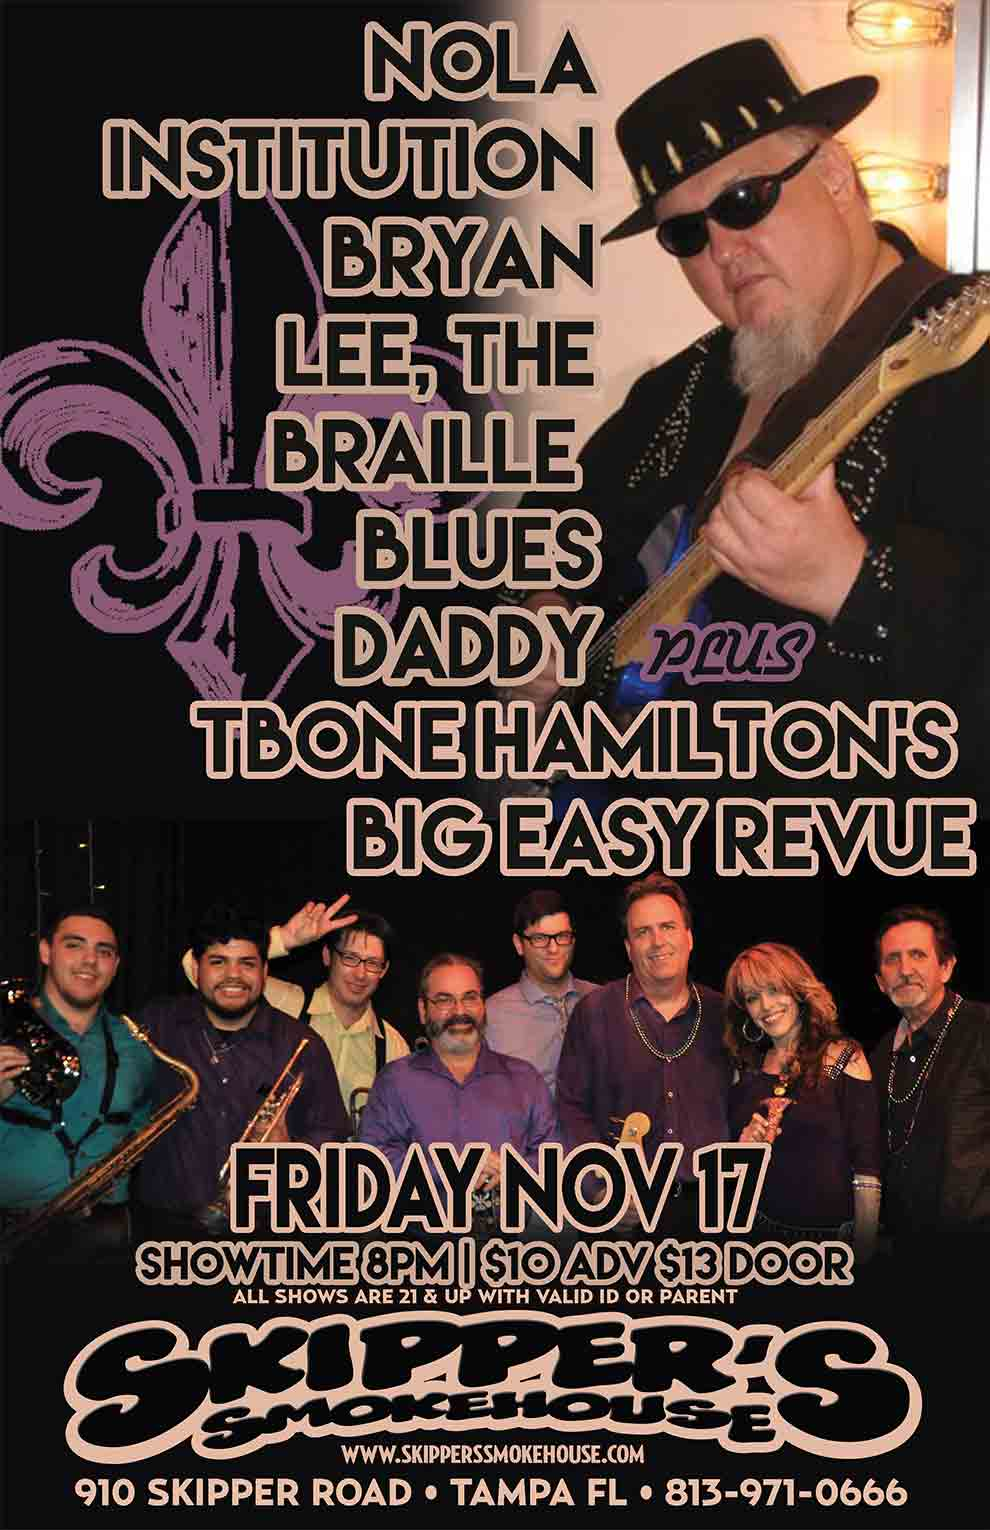 Bryan Lee, Braille Blues Daddy w/ T-Bone Hamilton's Big Easy Revue – $10/13